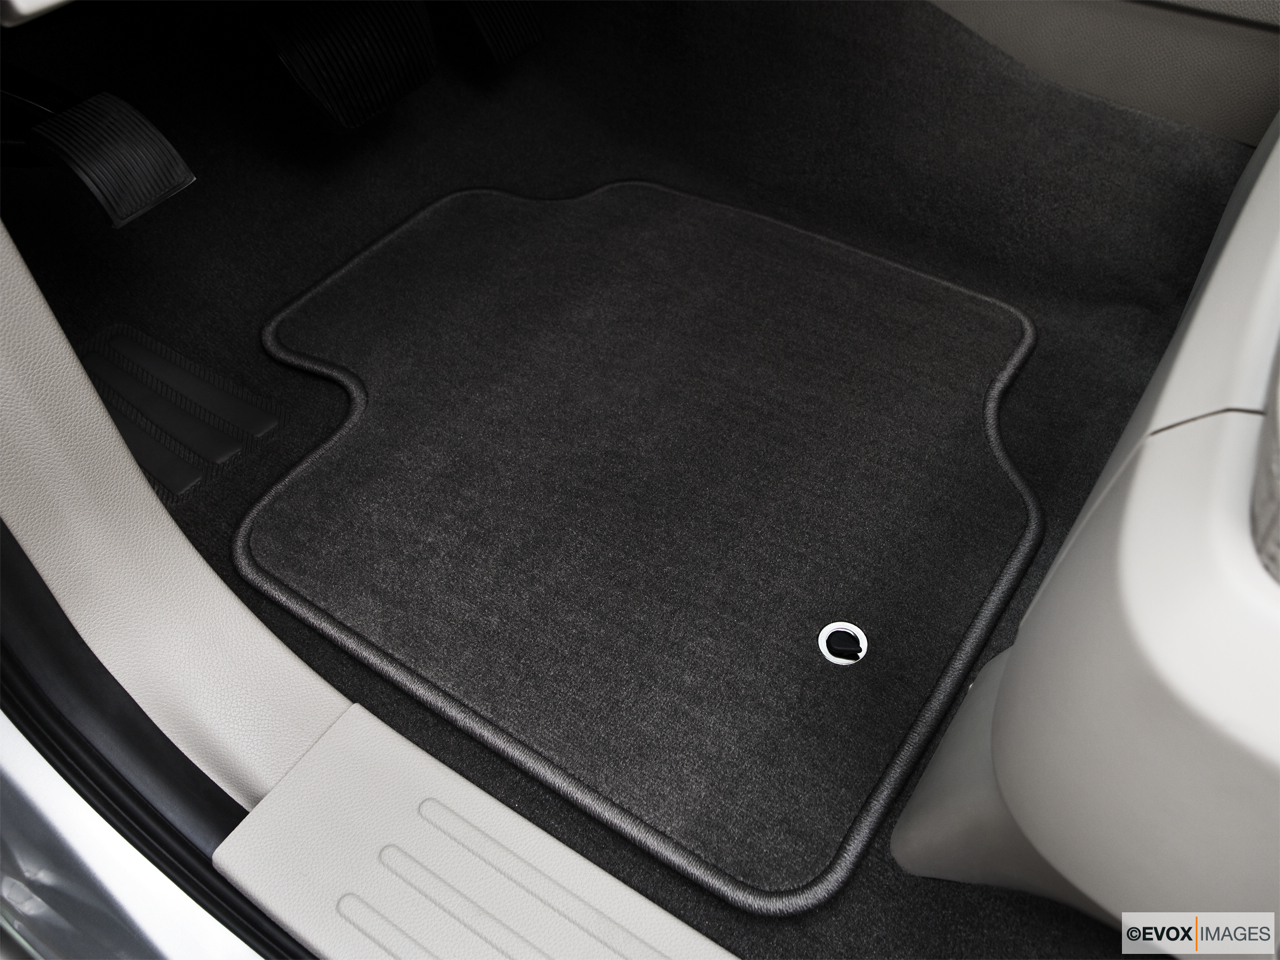 2010 Lincoln Navigator Base Driver's floor mat and pedals. Mid-seat level from outside looking in.